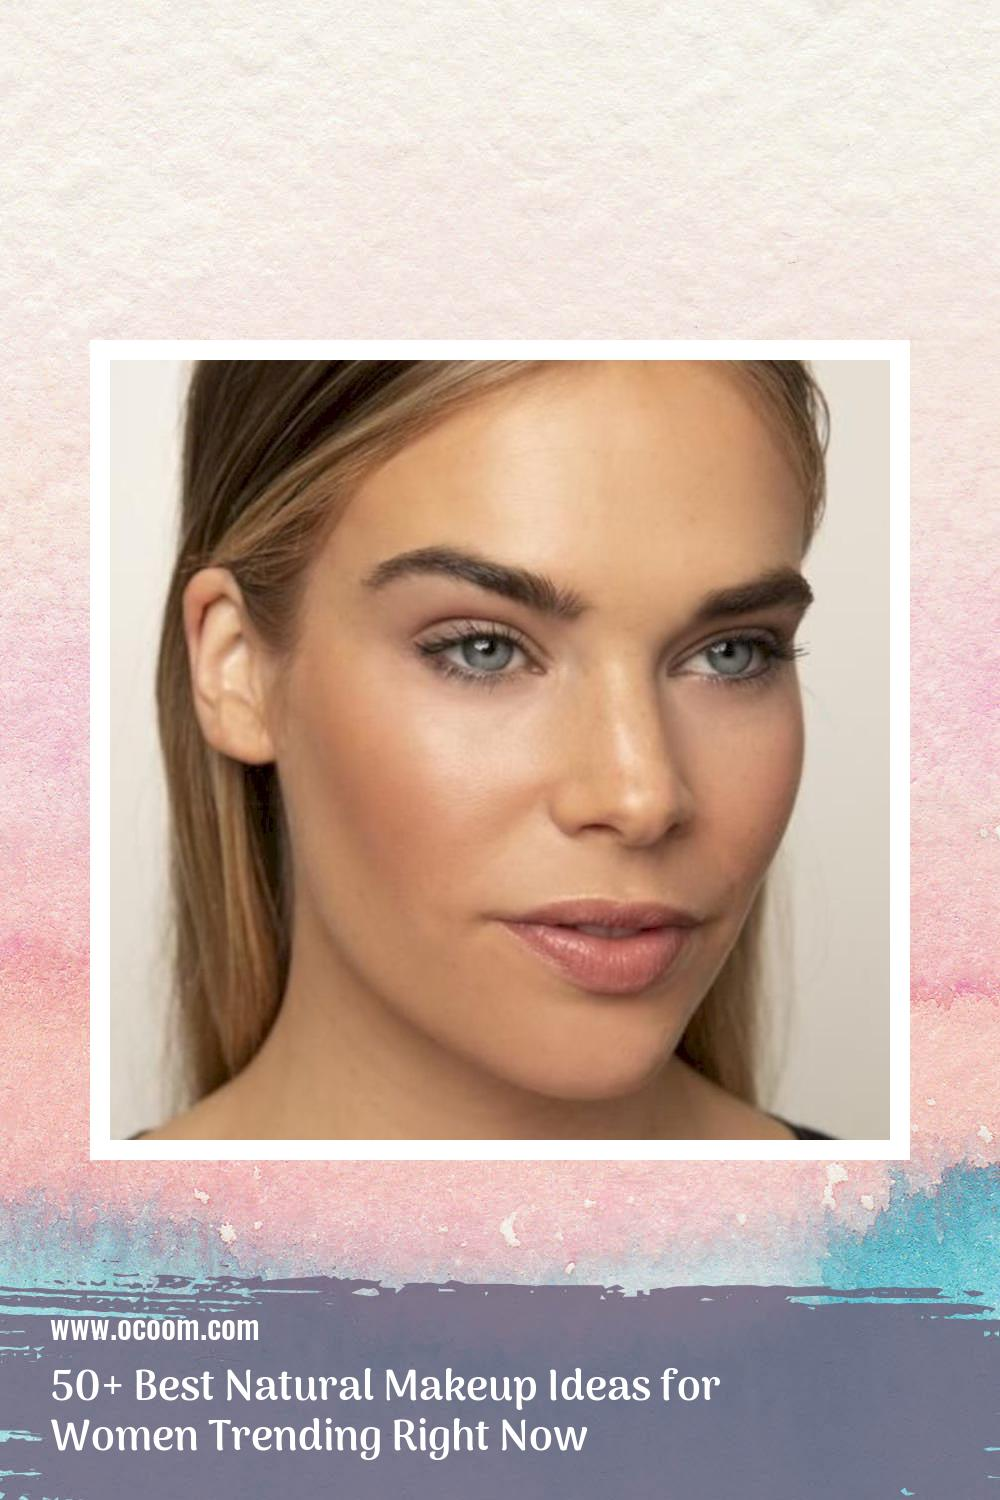 50+ Best Natural Makeup Ideas for Women Trending Right Now 30